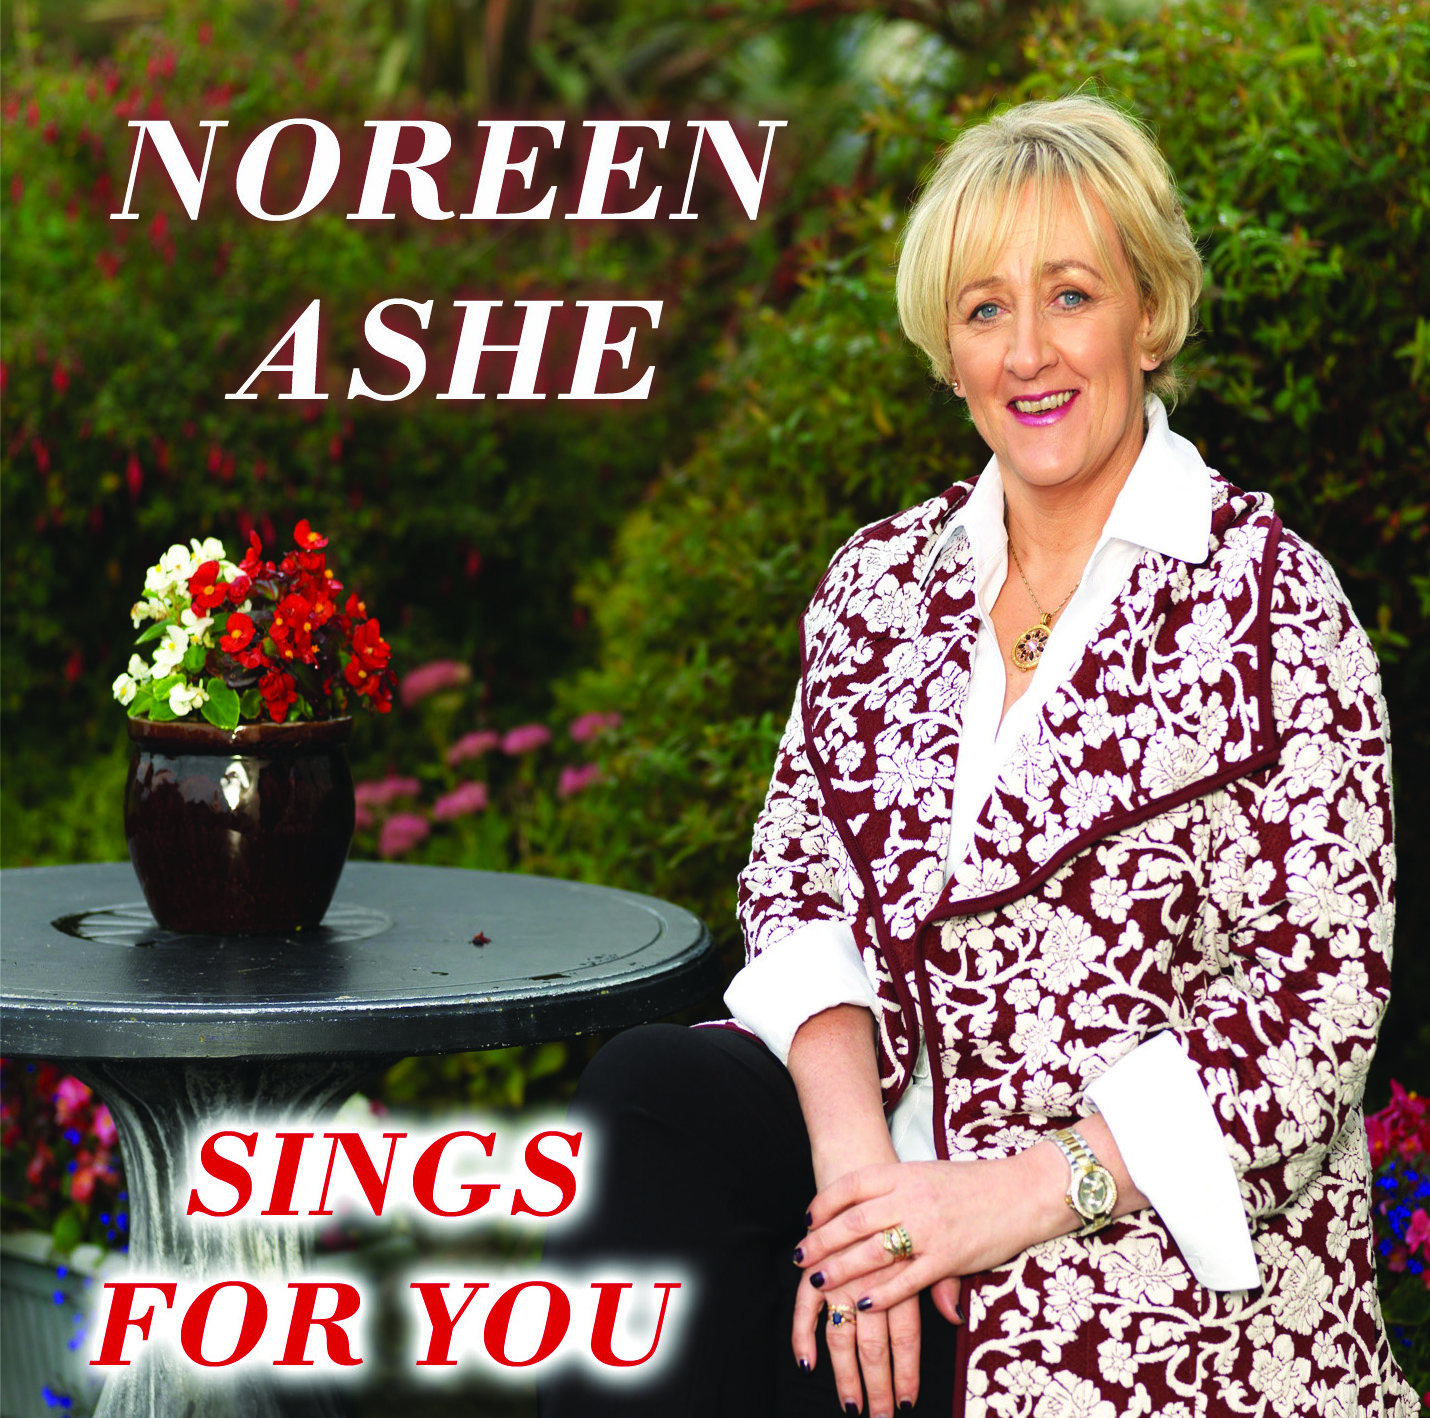 Noreen Ashe Sings for You Album Cover